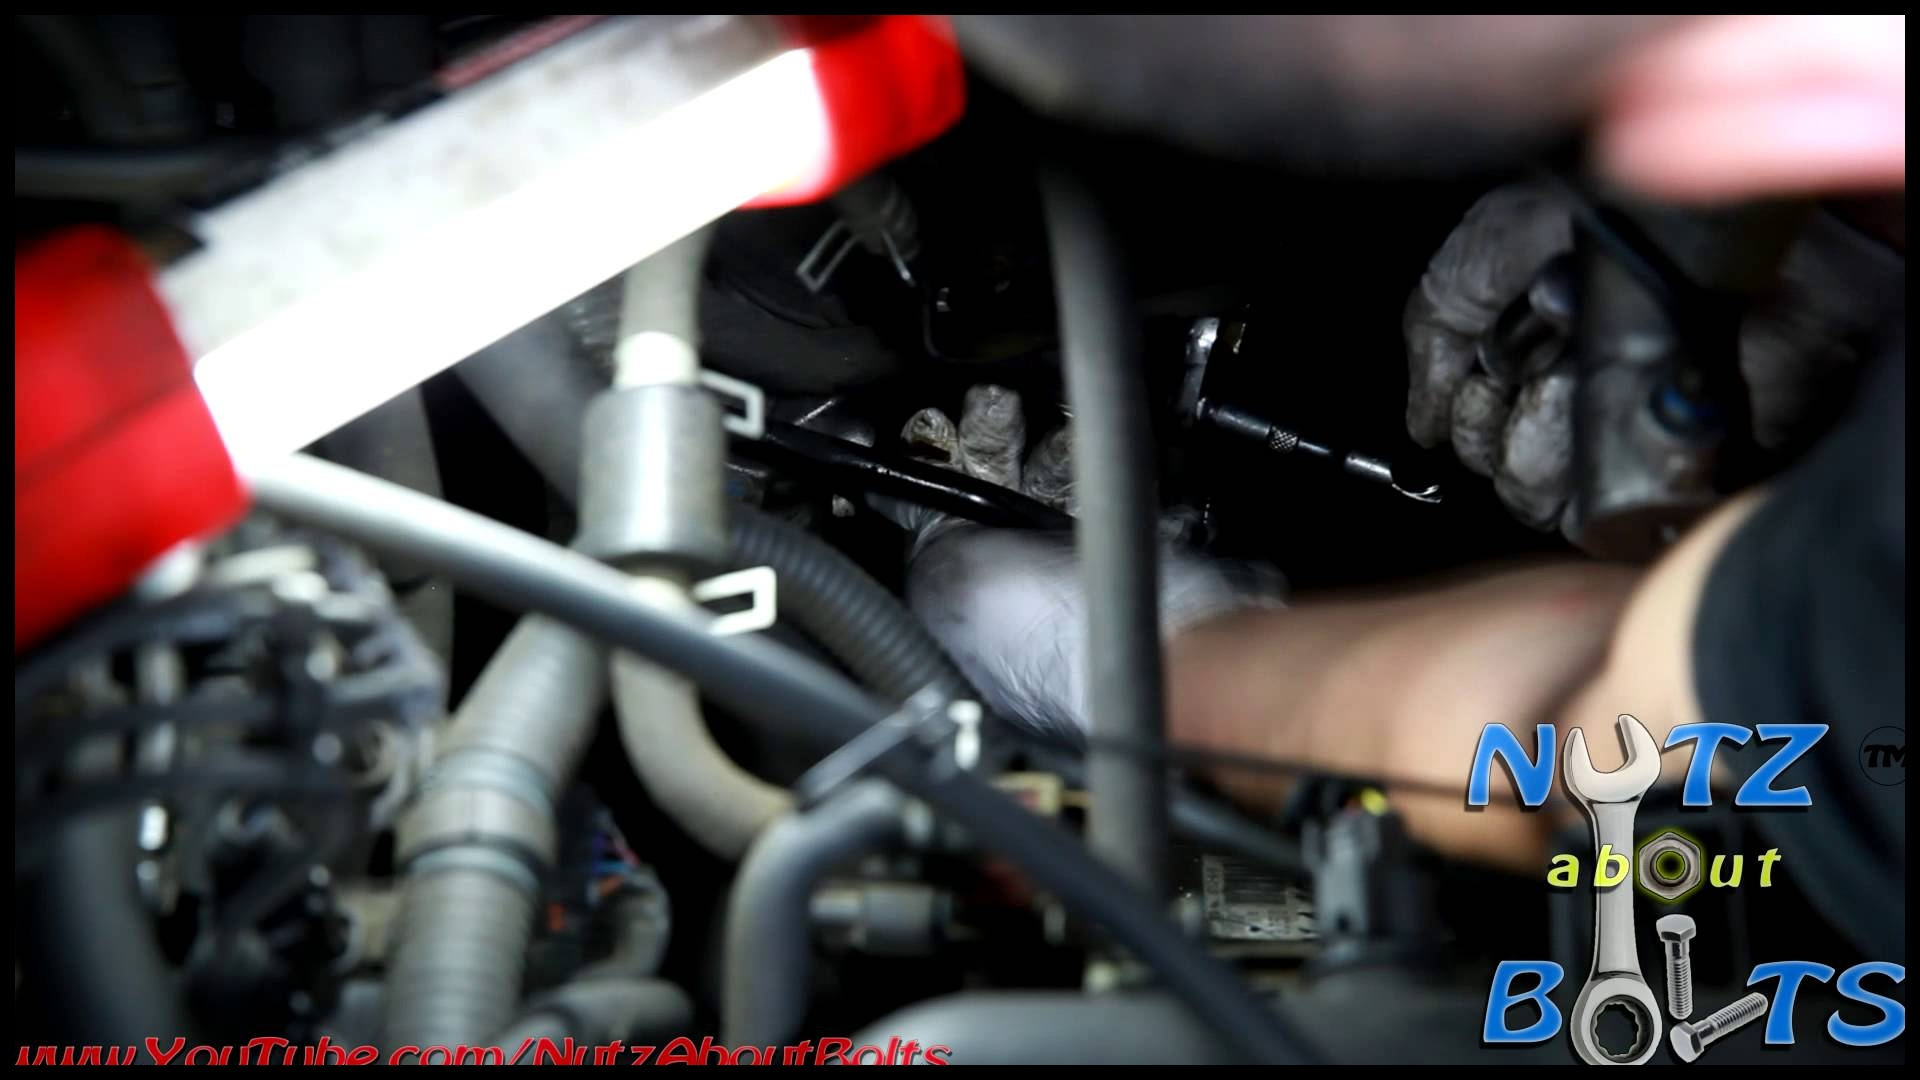 1998 2002 Toyota Corolla Power steering high pressure hose remove and install